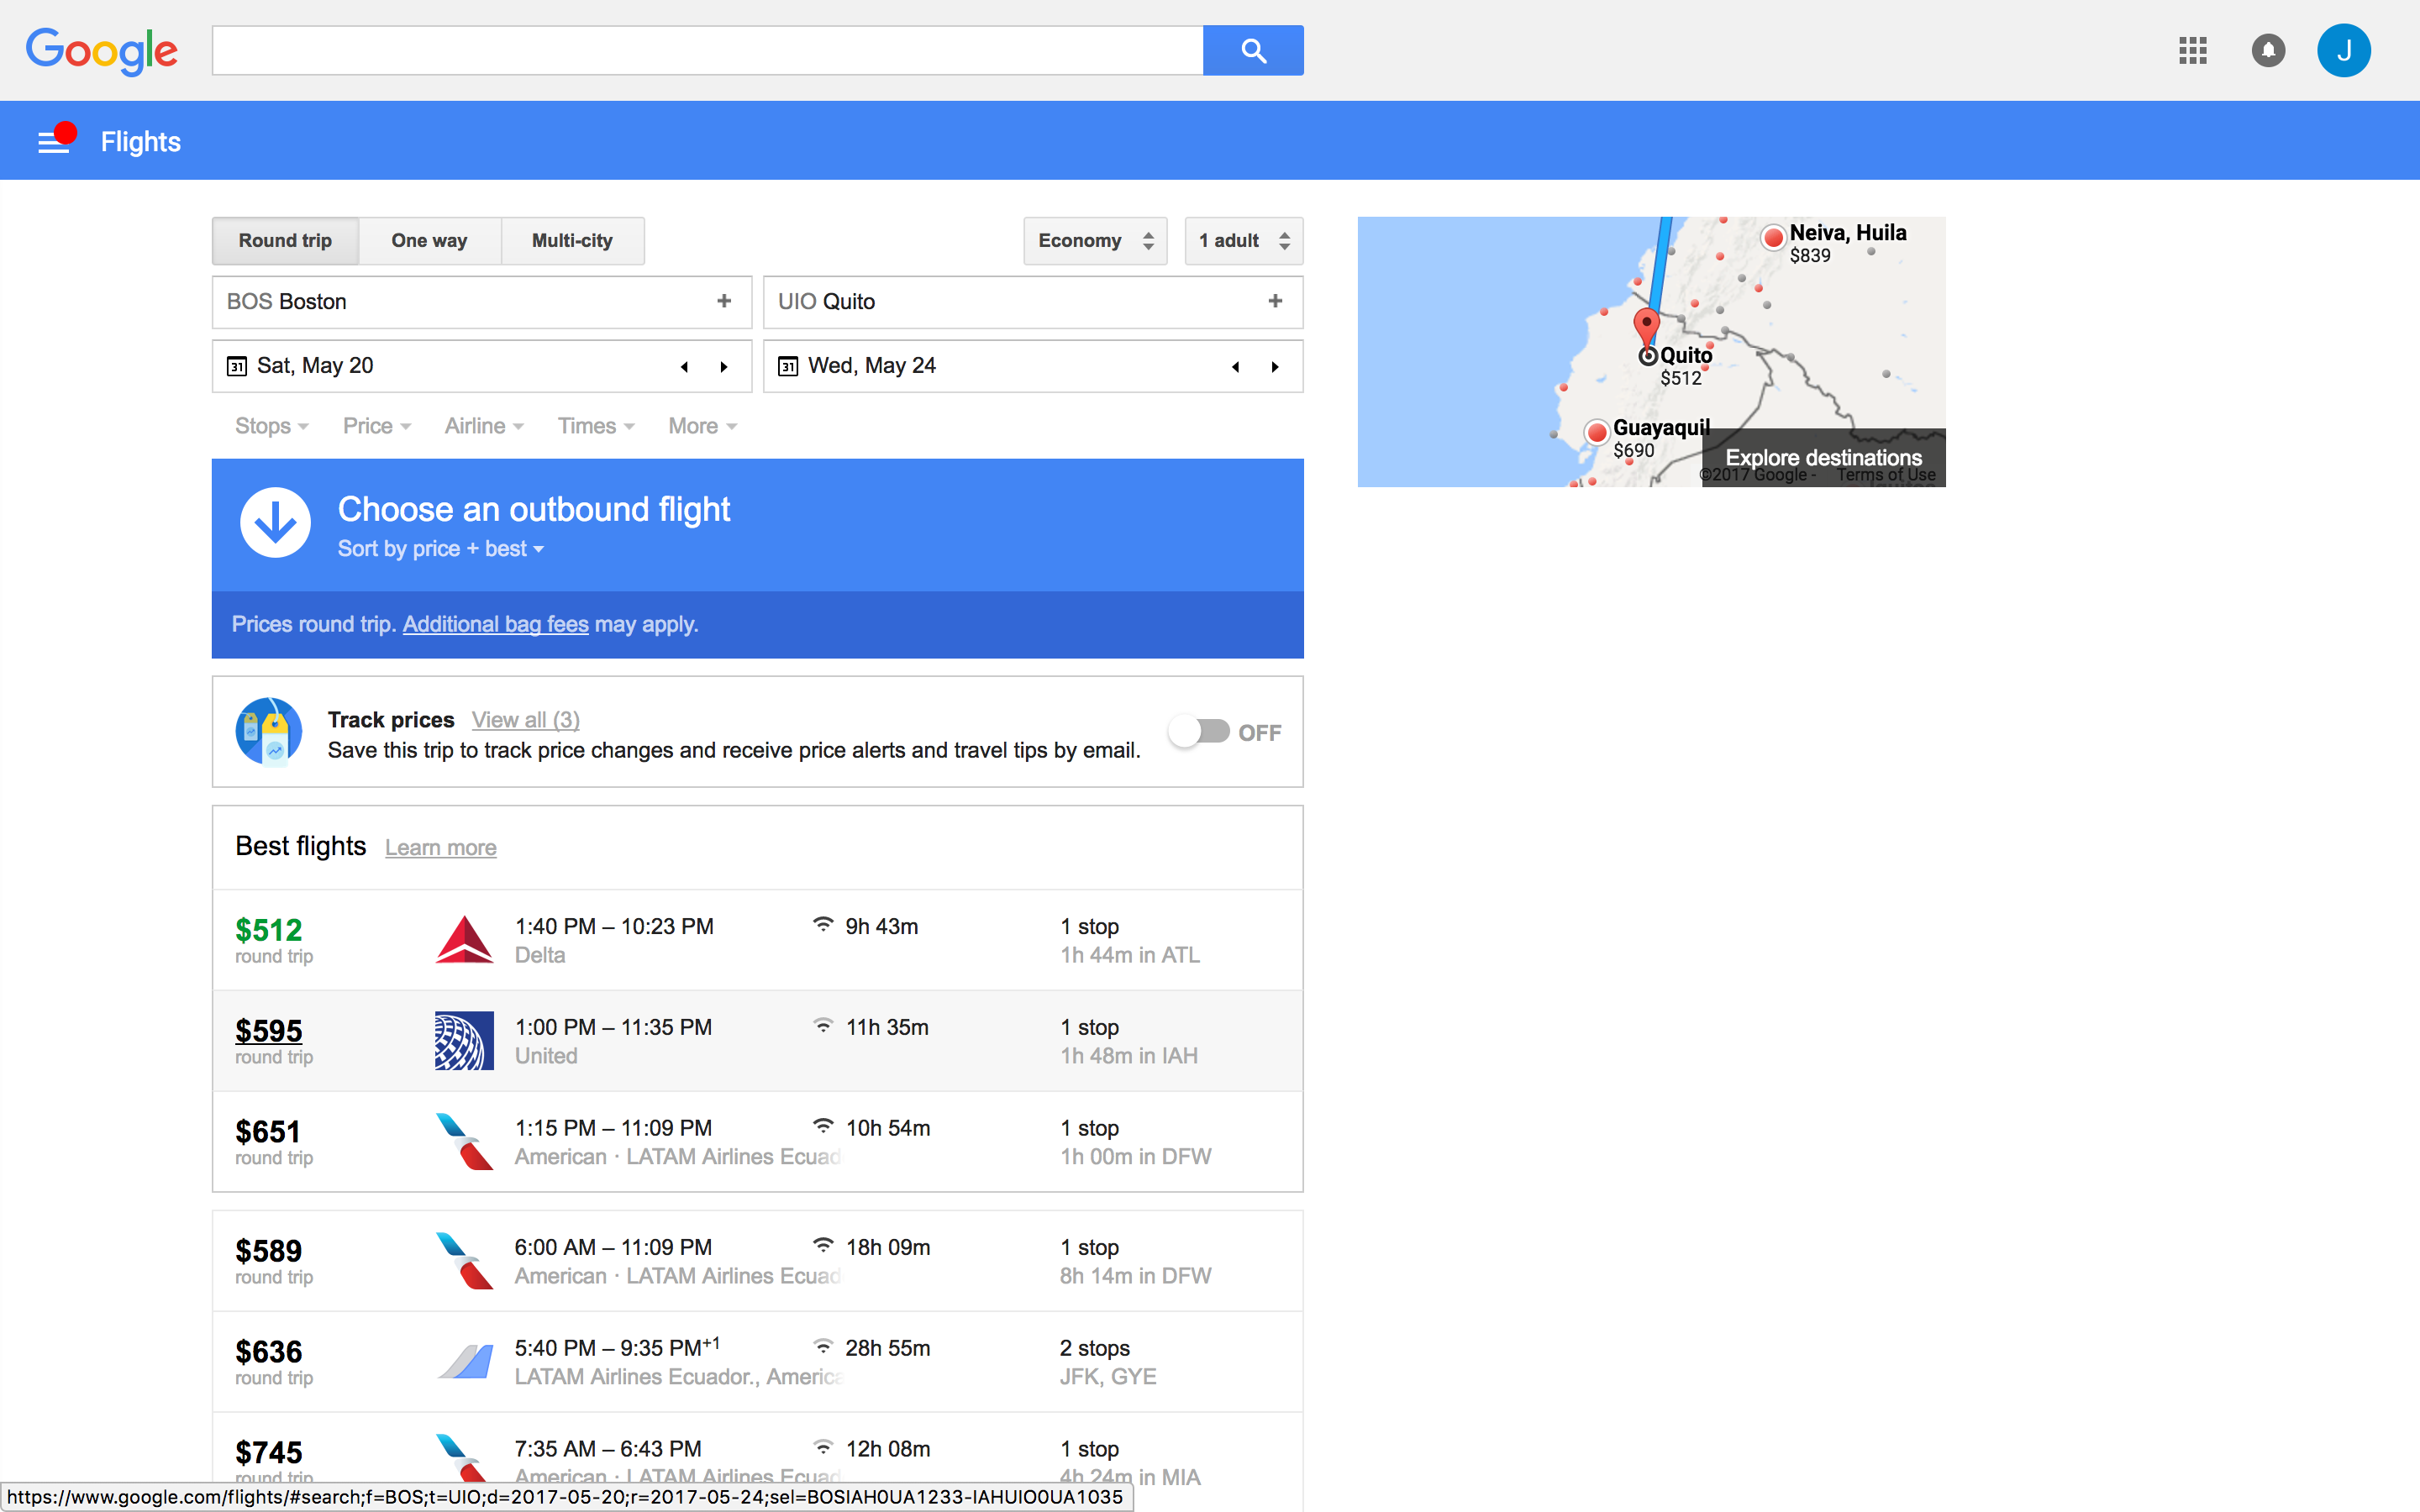 google flights search results 6